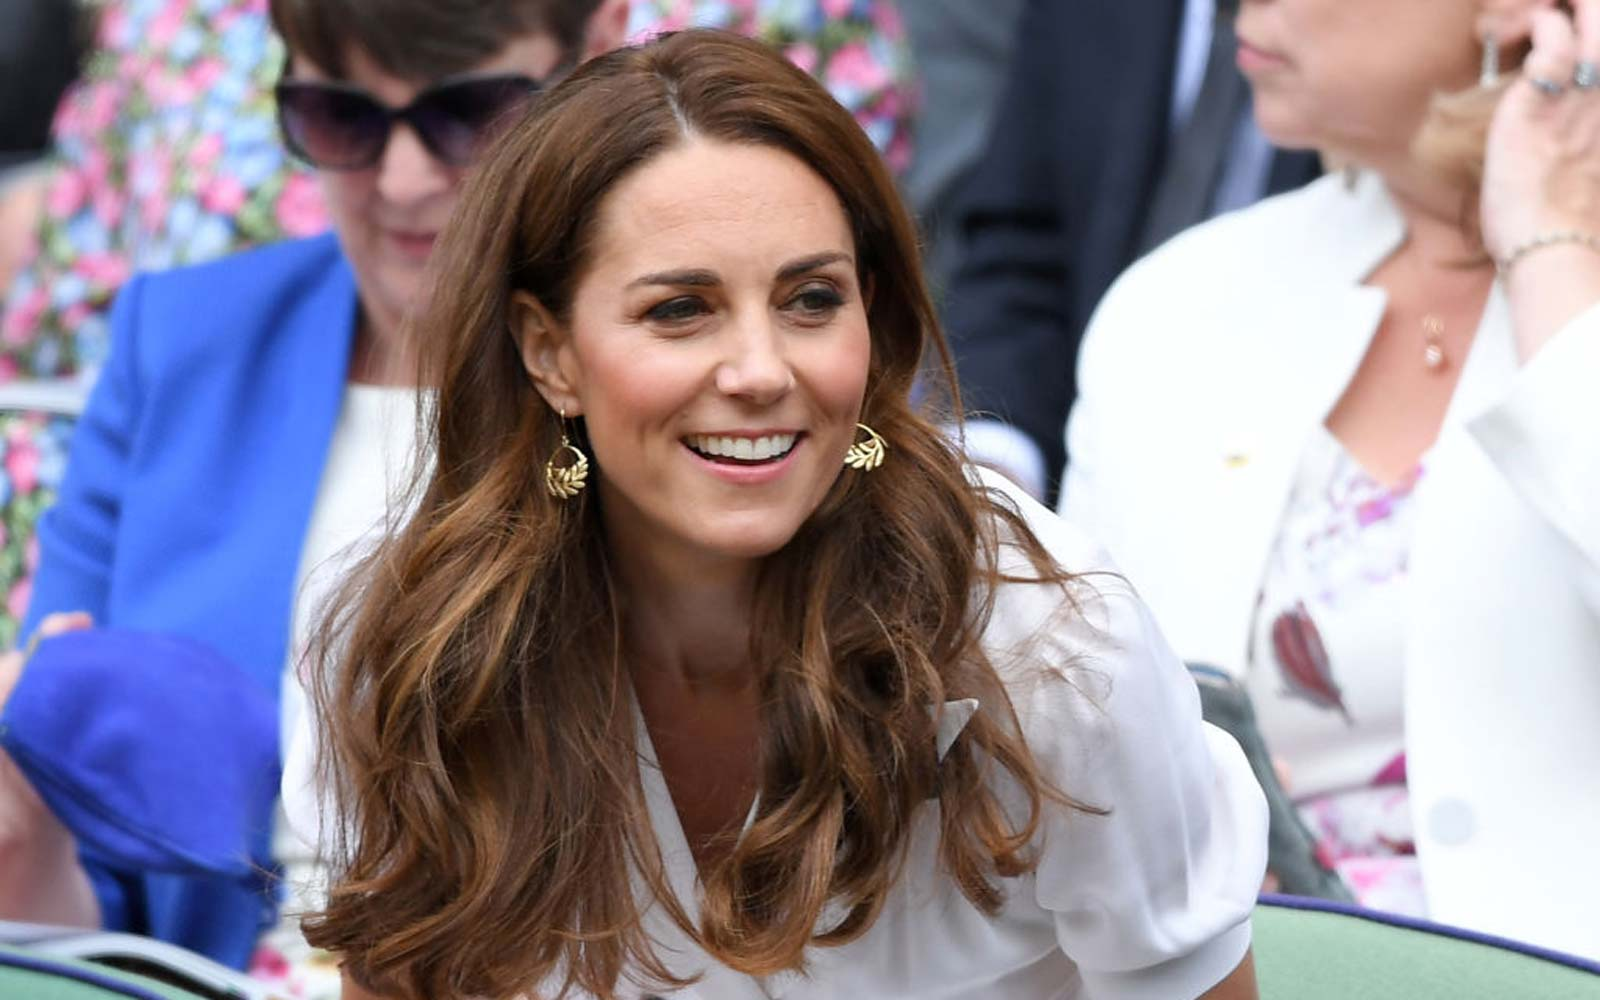 How Kate Middleton's Stylist Helped Get Her Out of Her 'Style Rut'